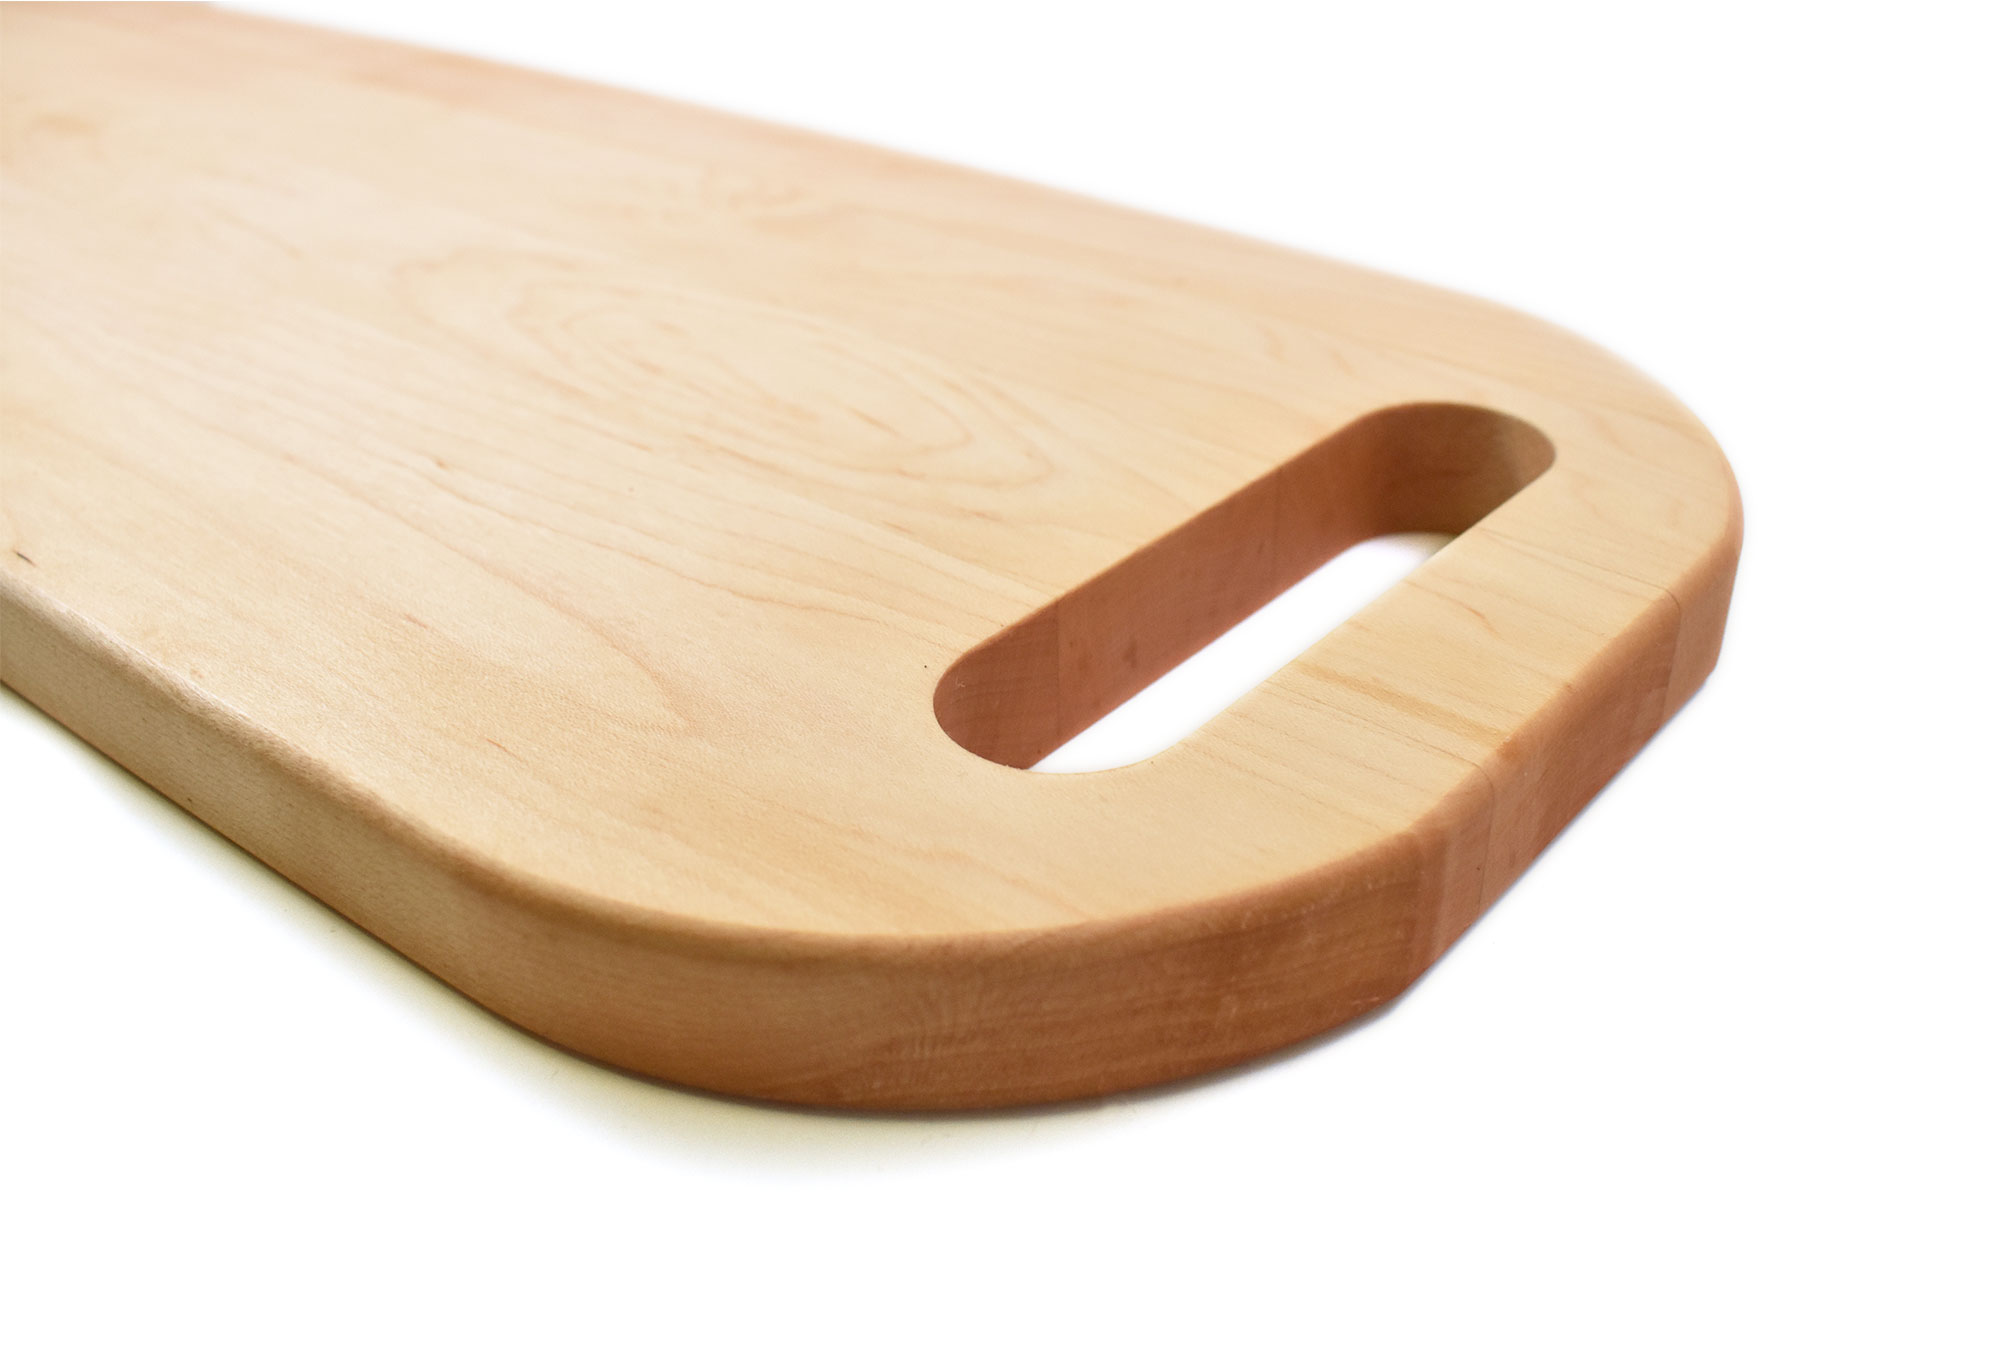 Maple serving tray with handles on both ends